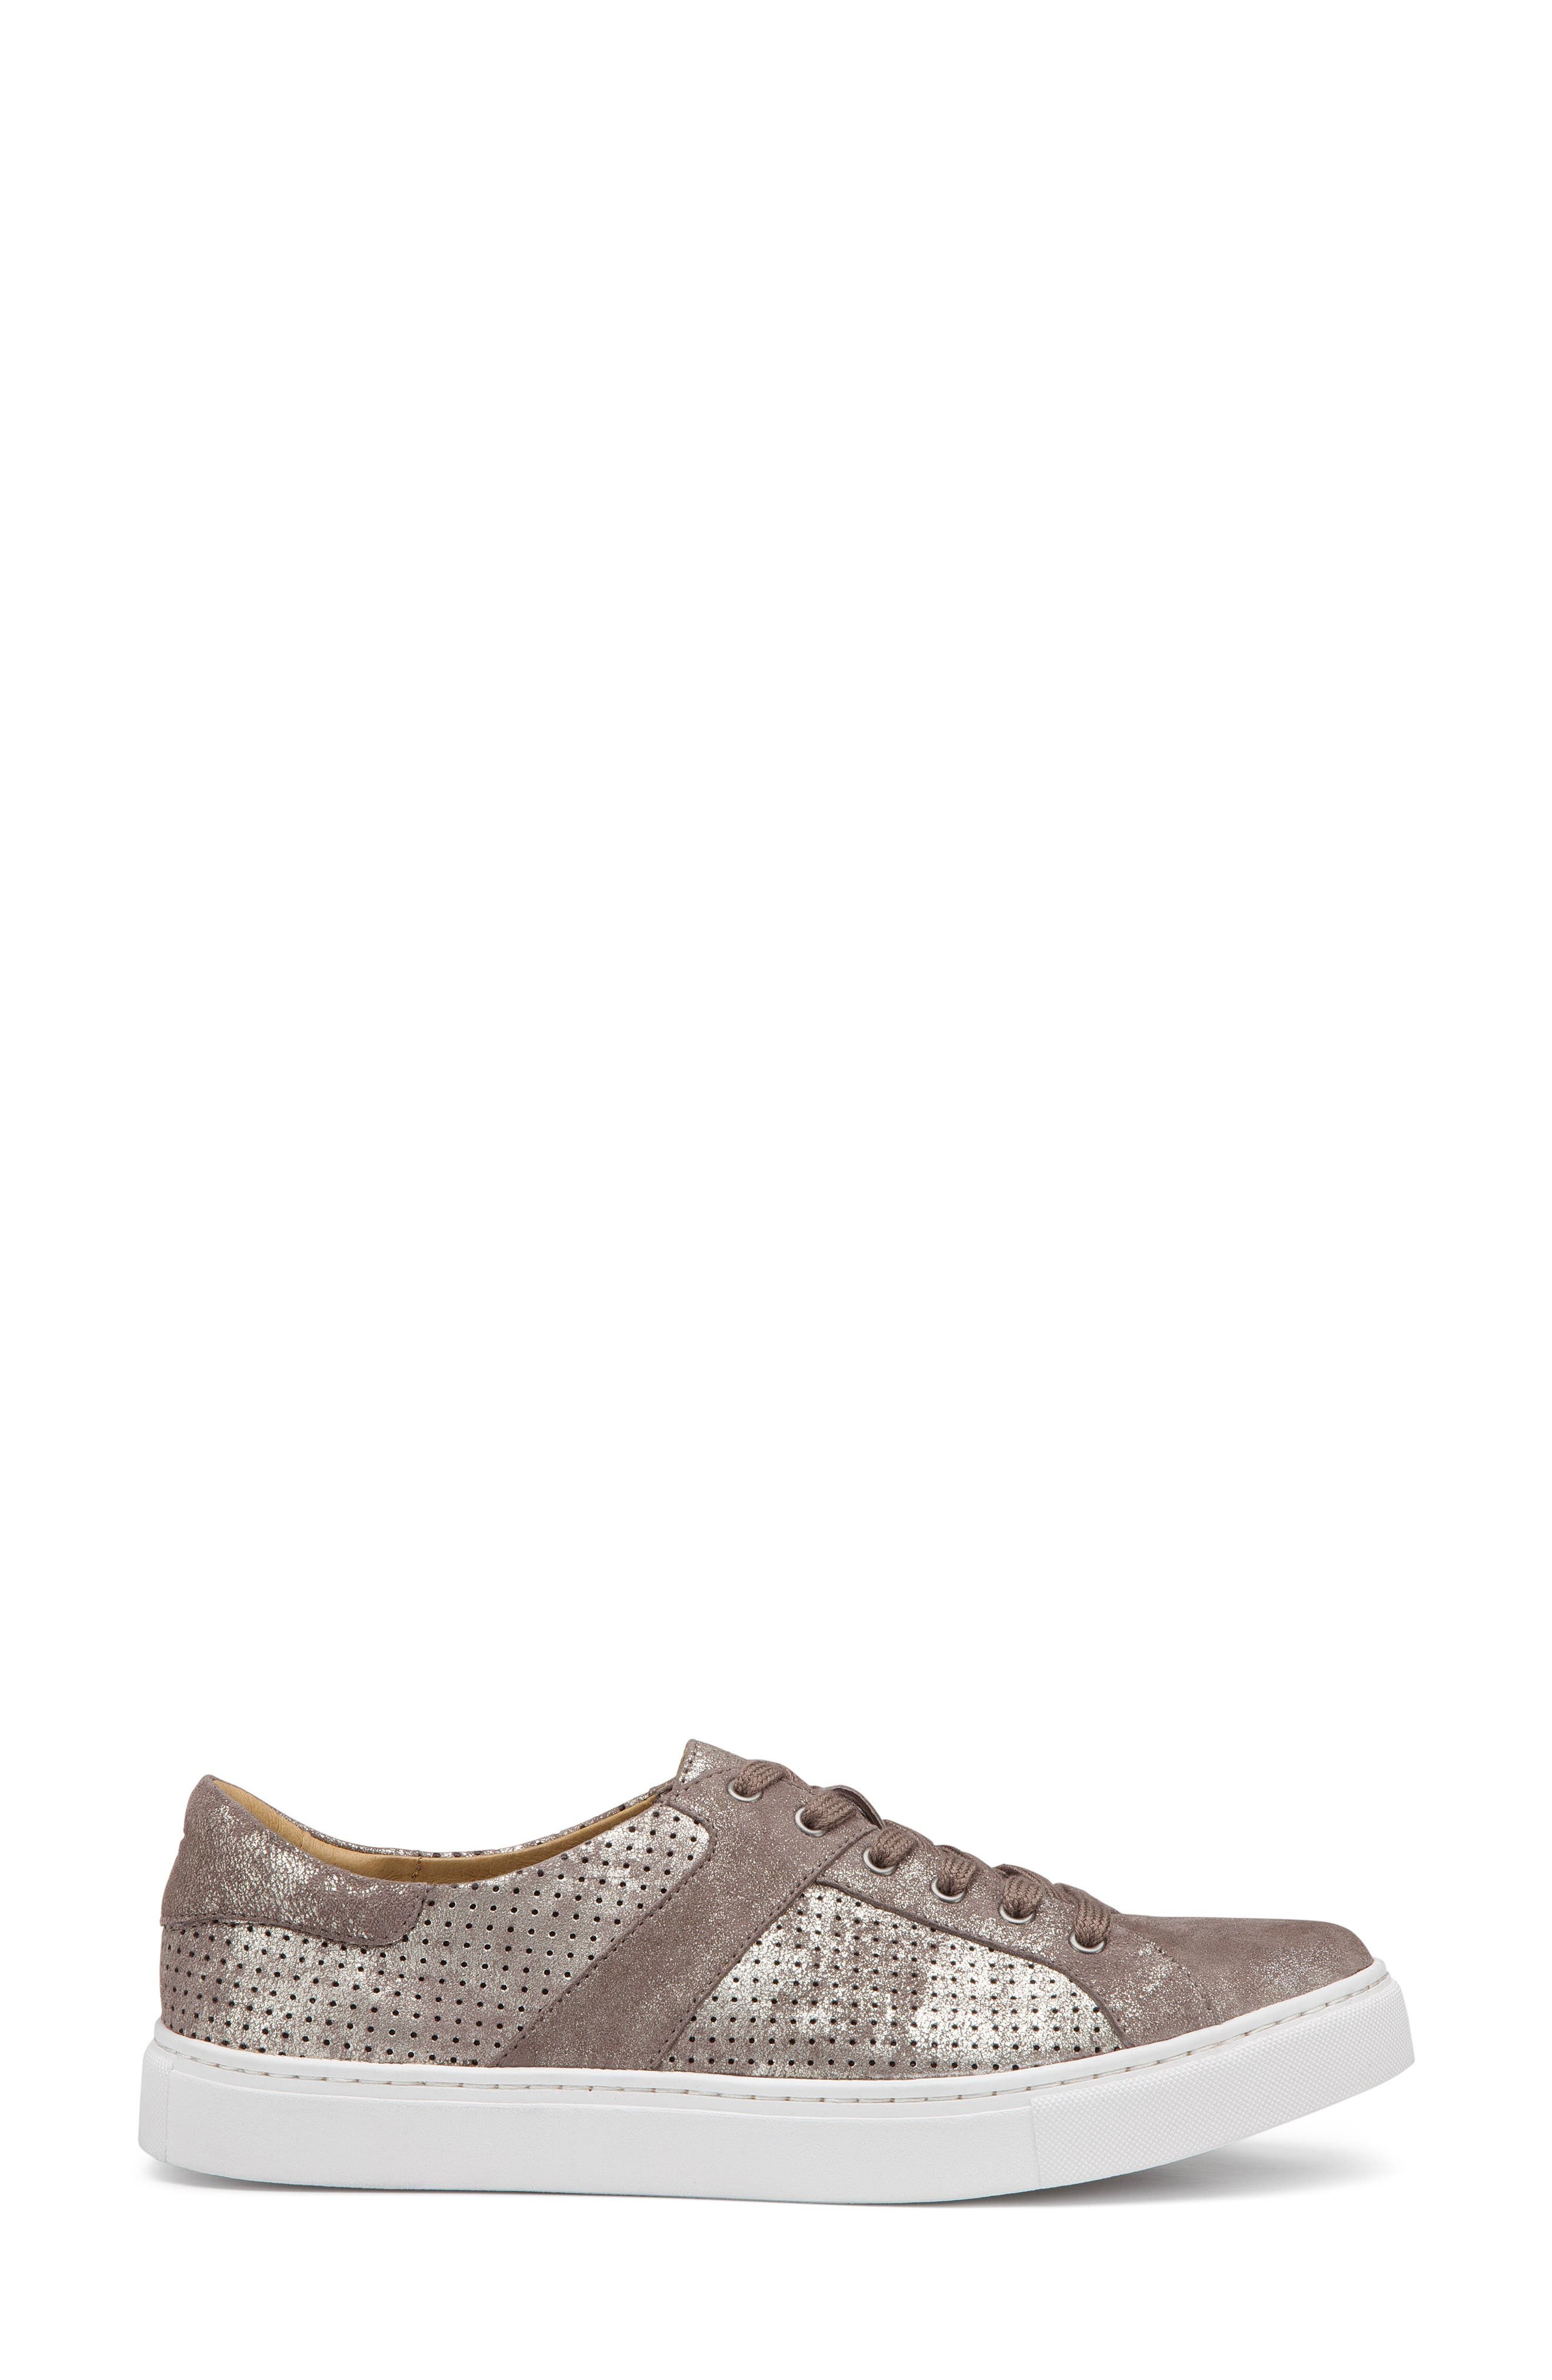 Lindsey Sneaker,                             Alternate thumbnail 3, color,                             Pewter Suede